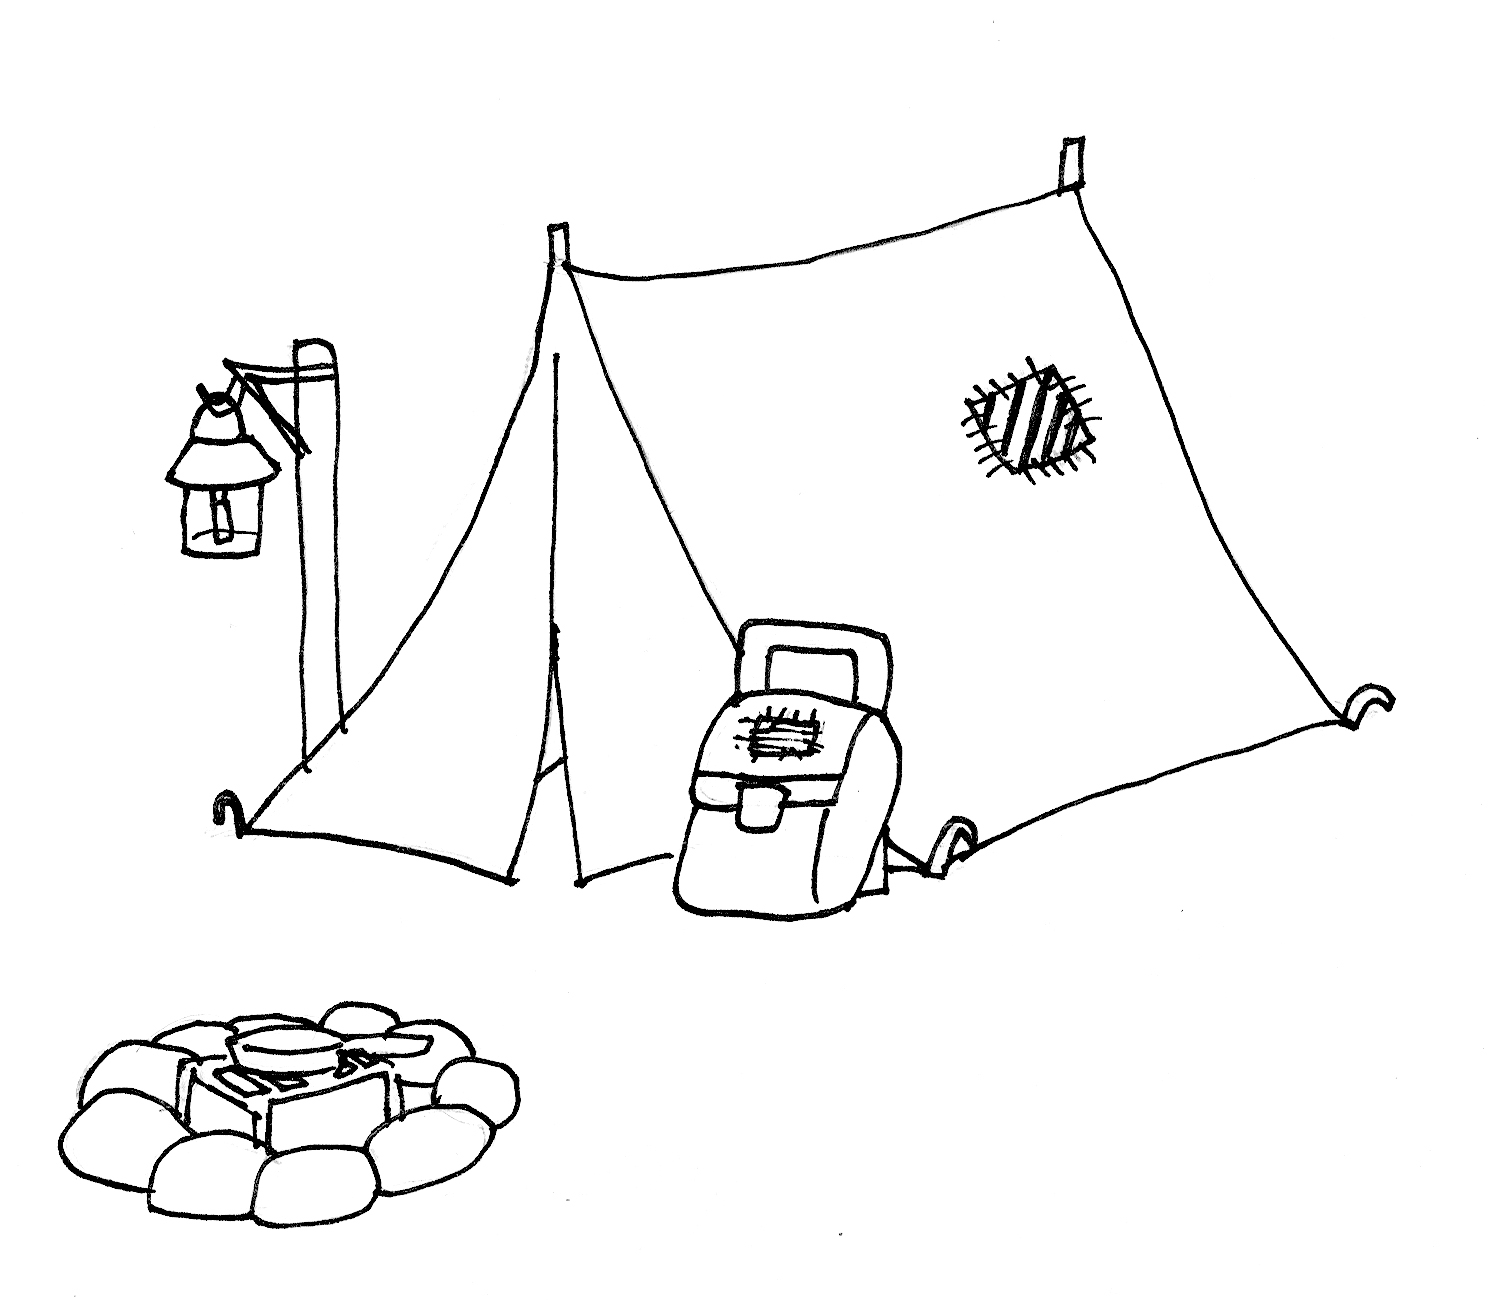 Camping Tent Drawing at GetDrawings.com | Free for personal use ...